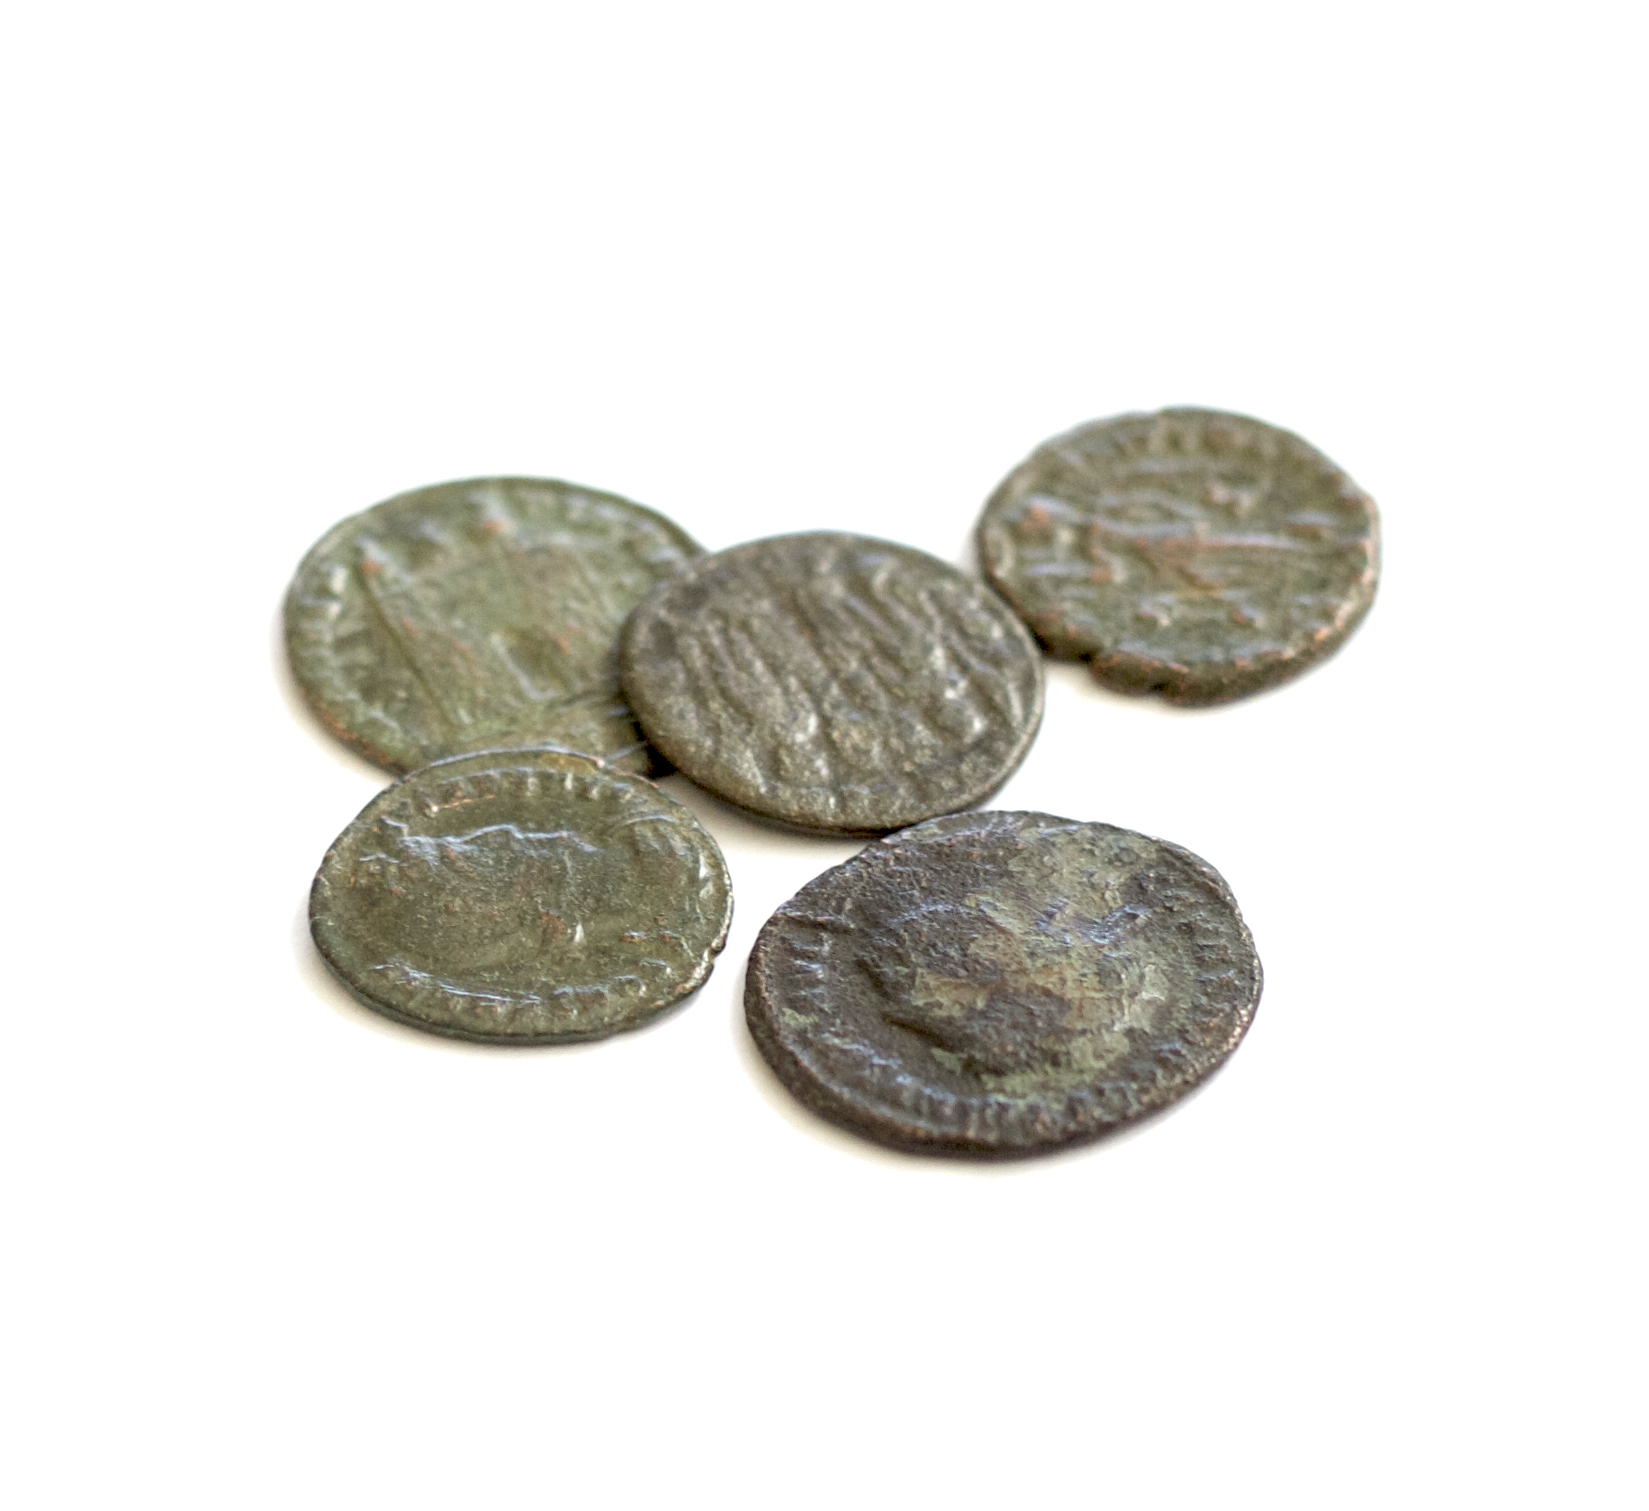 FristWorkshop.RomanCoins.jpg